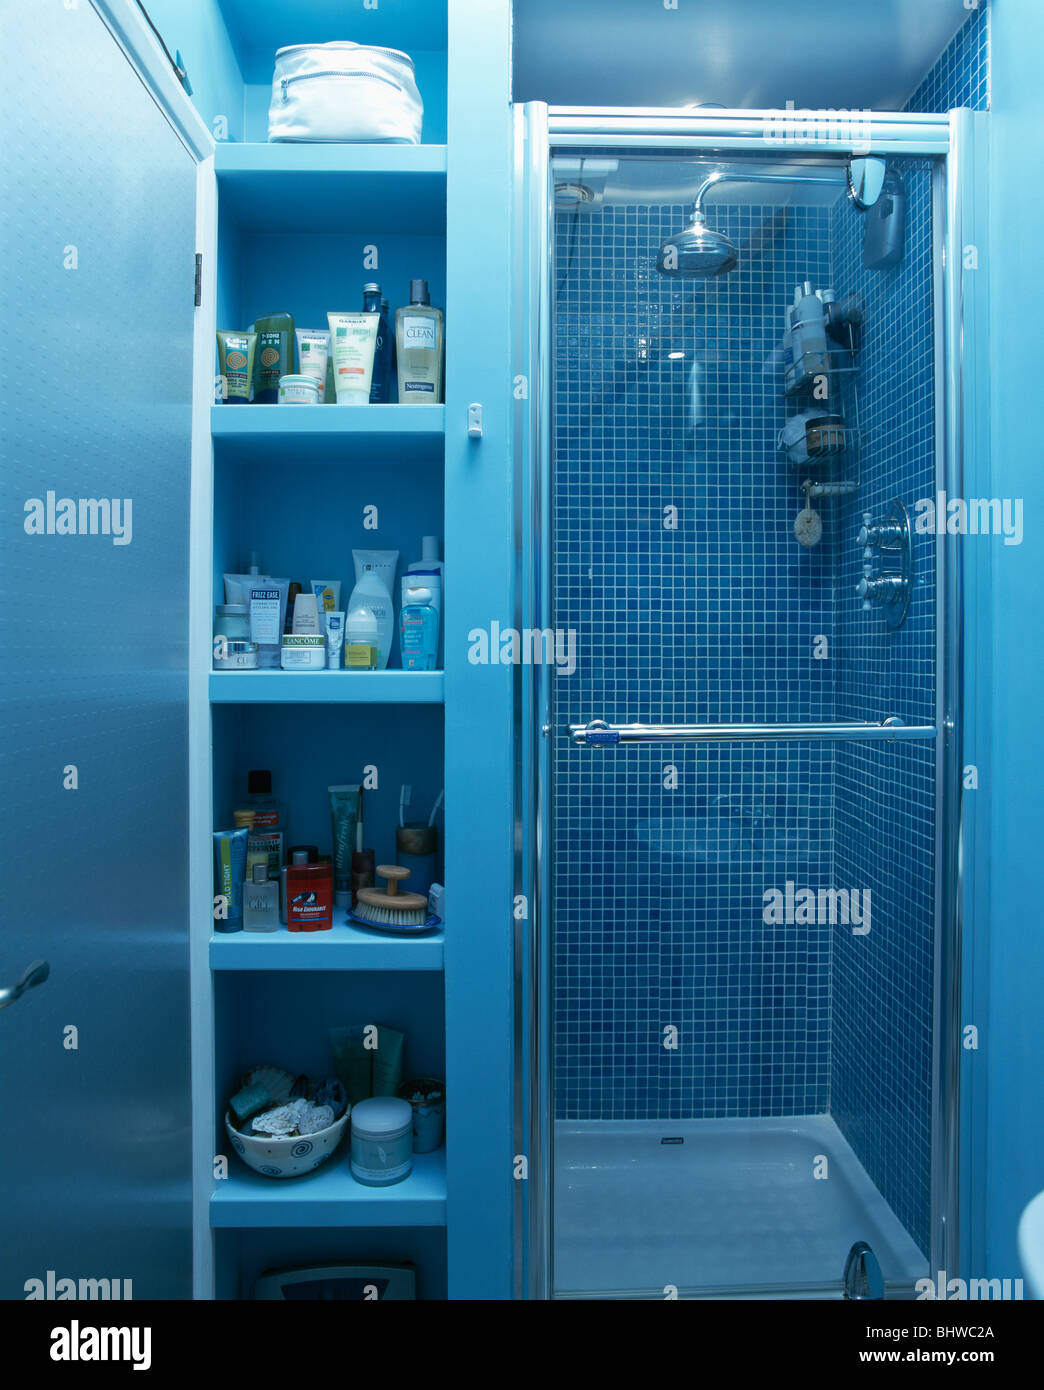 Bathrooms Interiors Showers Town Stock Photos & Bathrooms Interiors ...